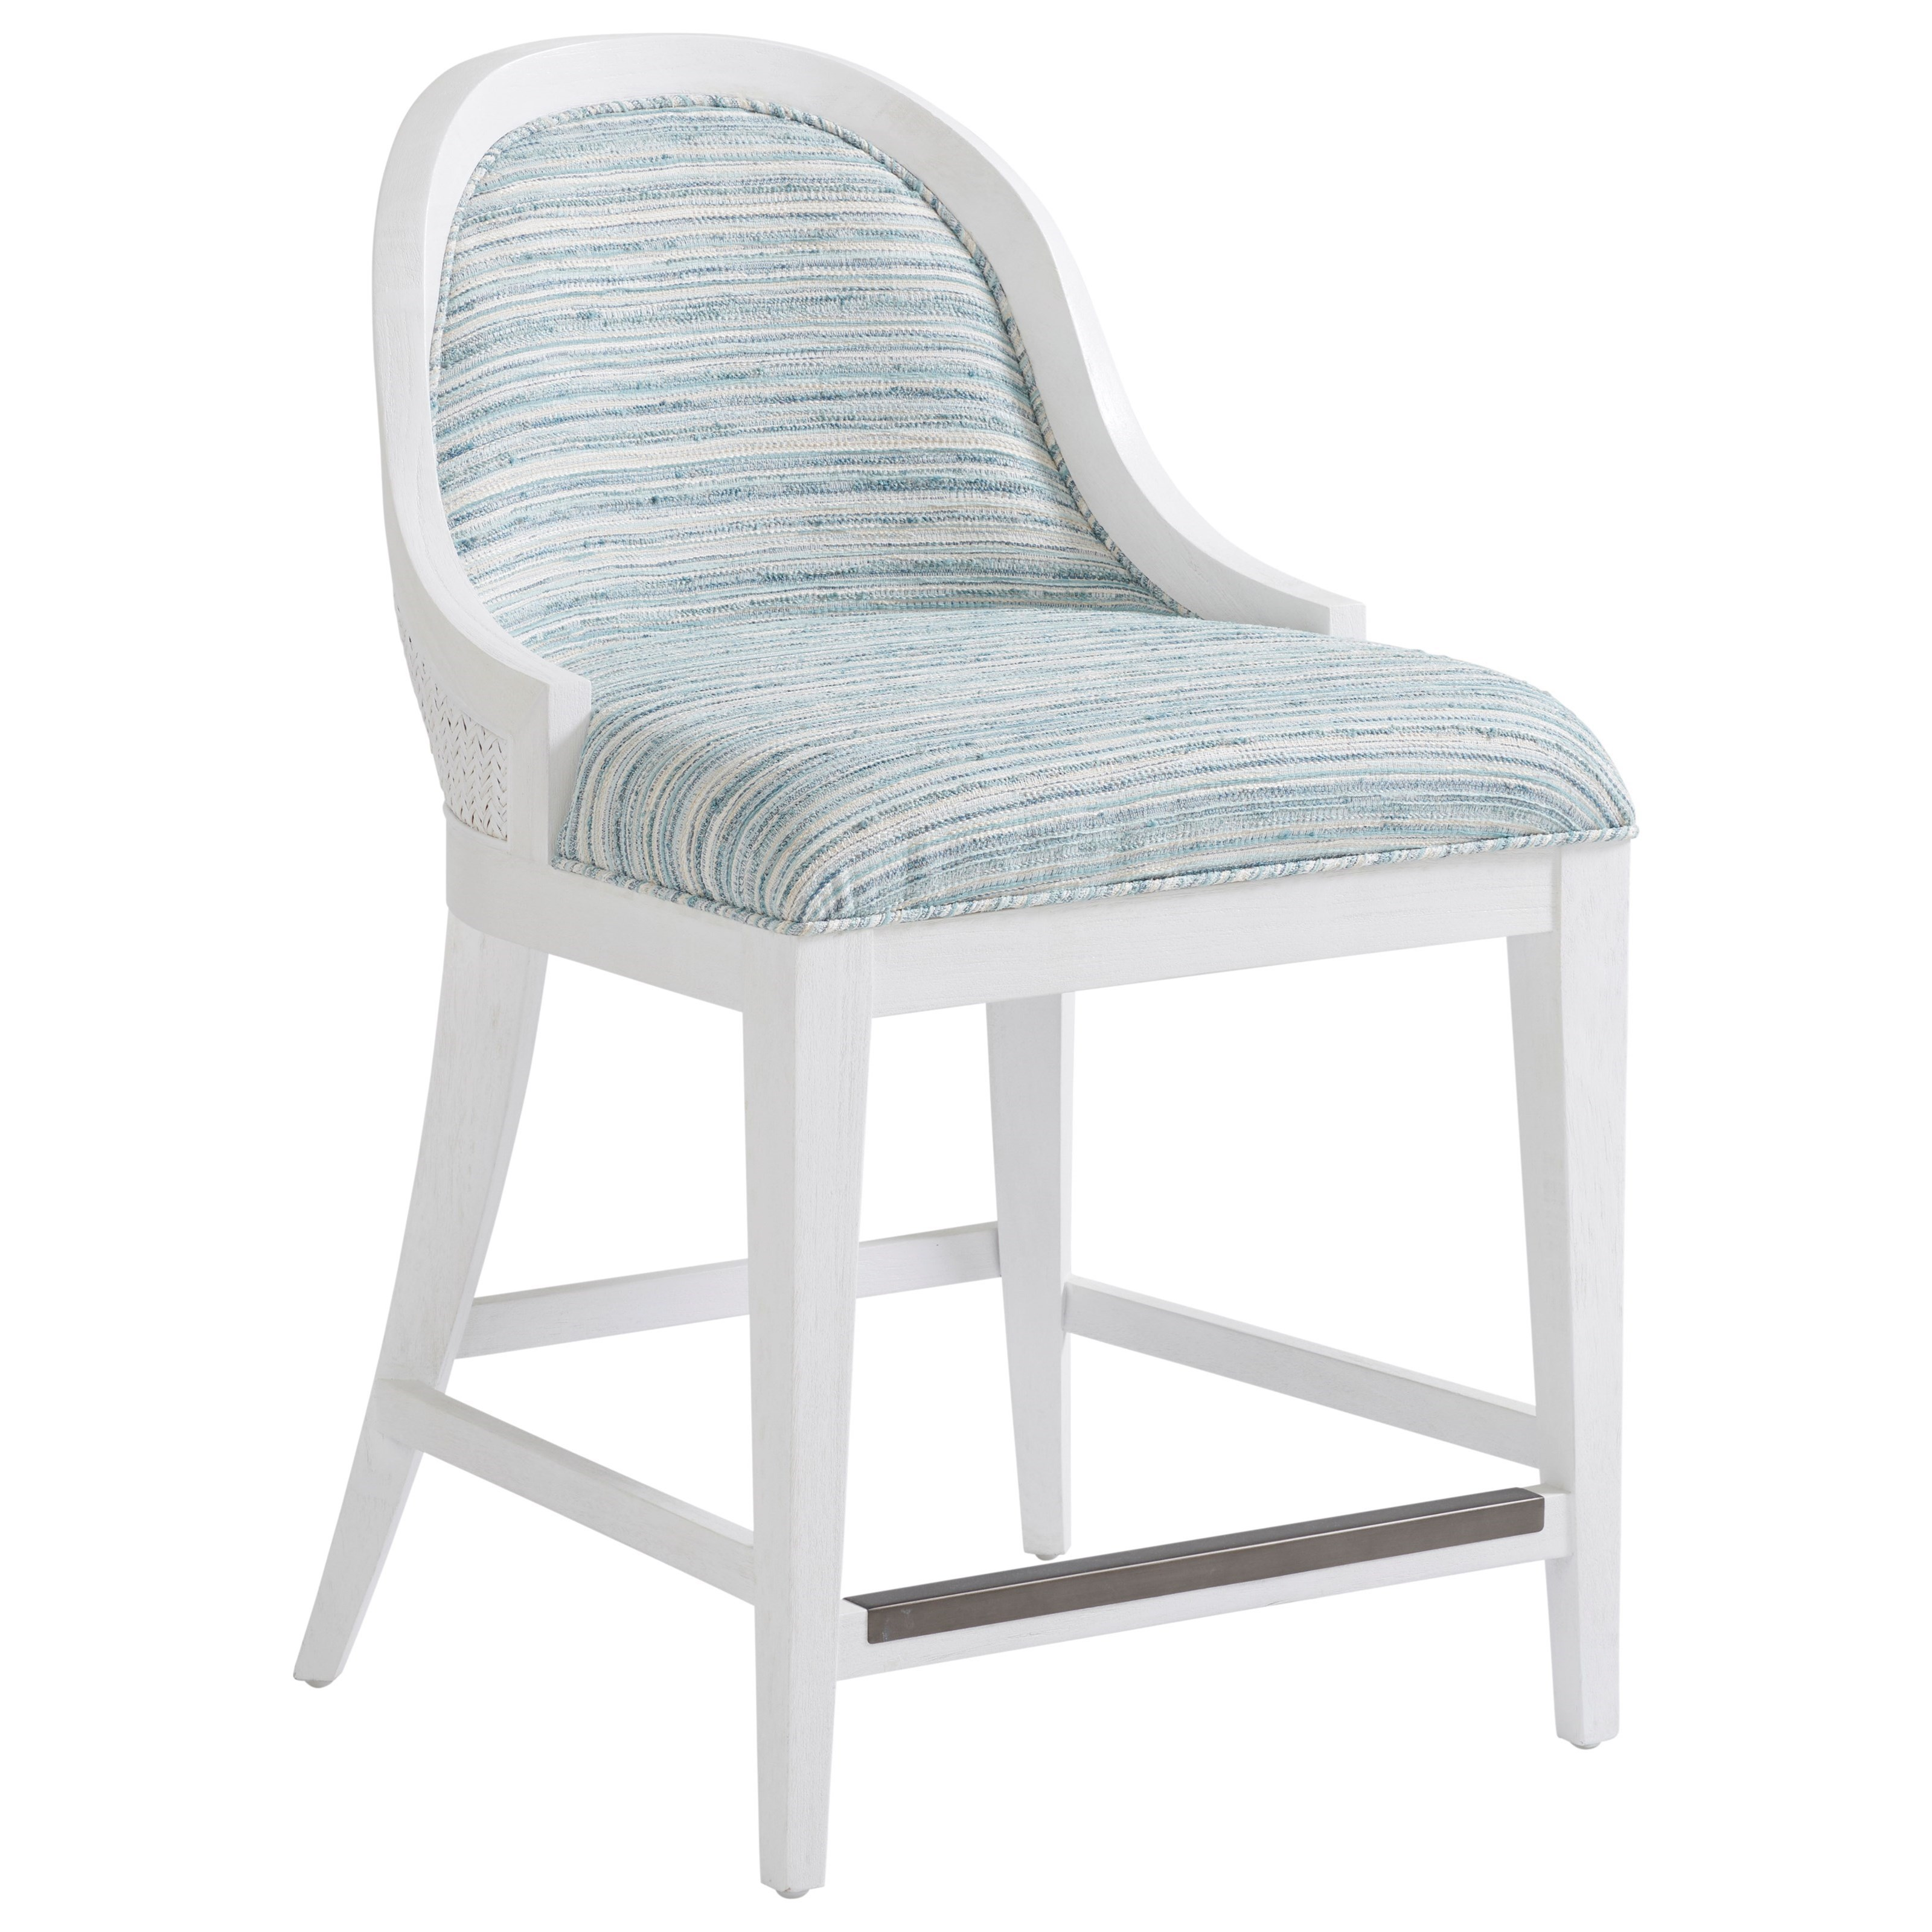 Ocean Breeze Lantana Counter Stool by Tommy Bahama Home at Baer's Furniture